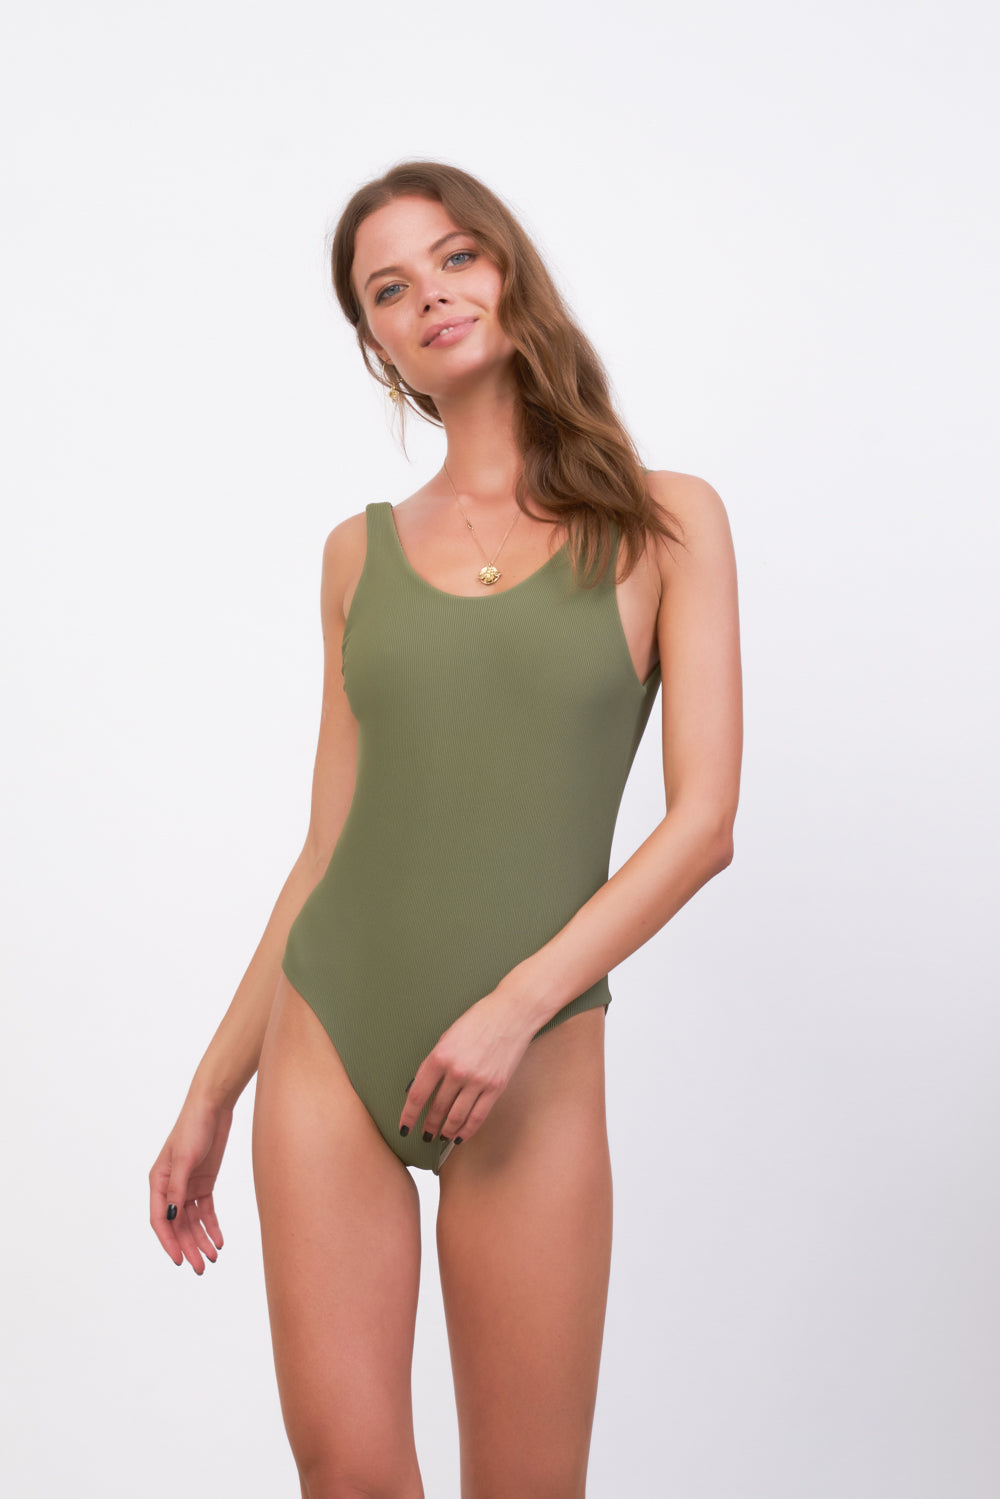 Storm Swimwear - Cayman - One Piece in Jungle Corduroy